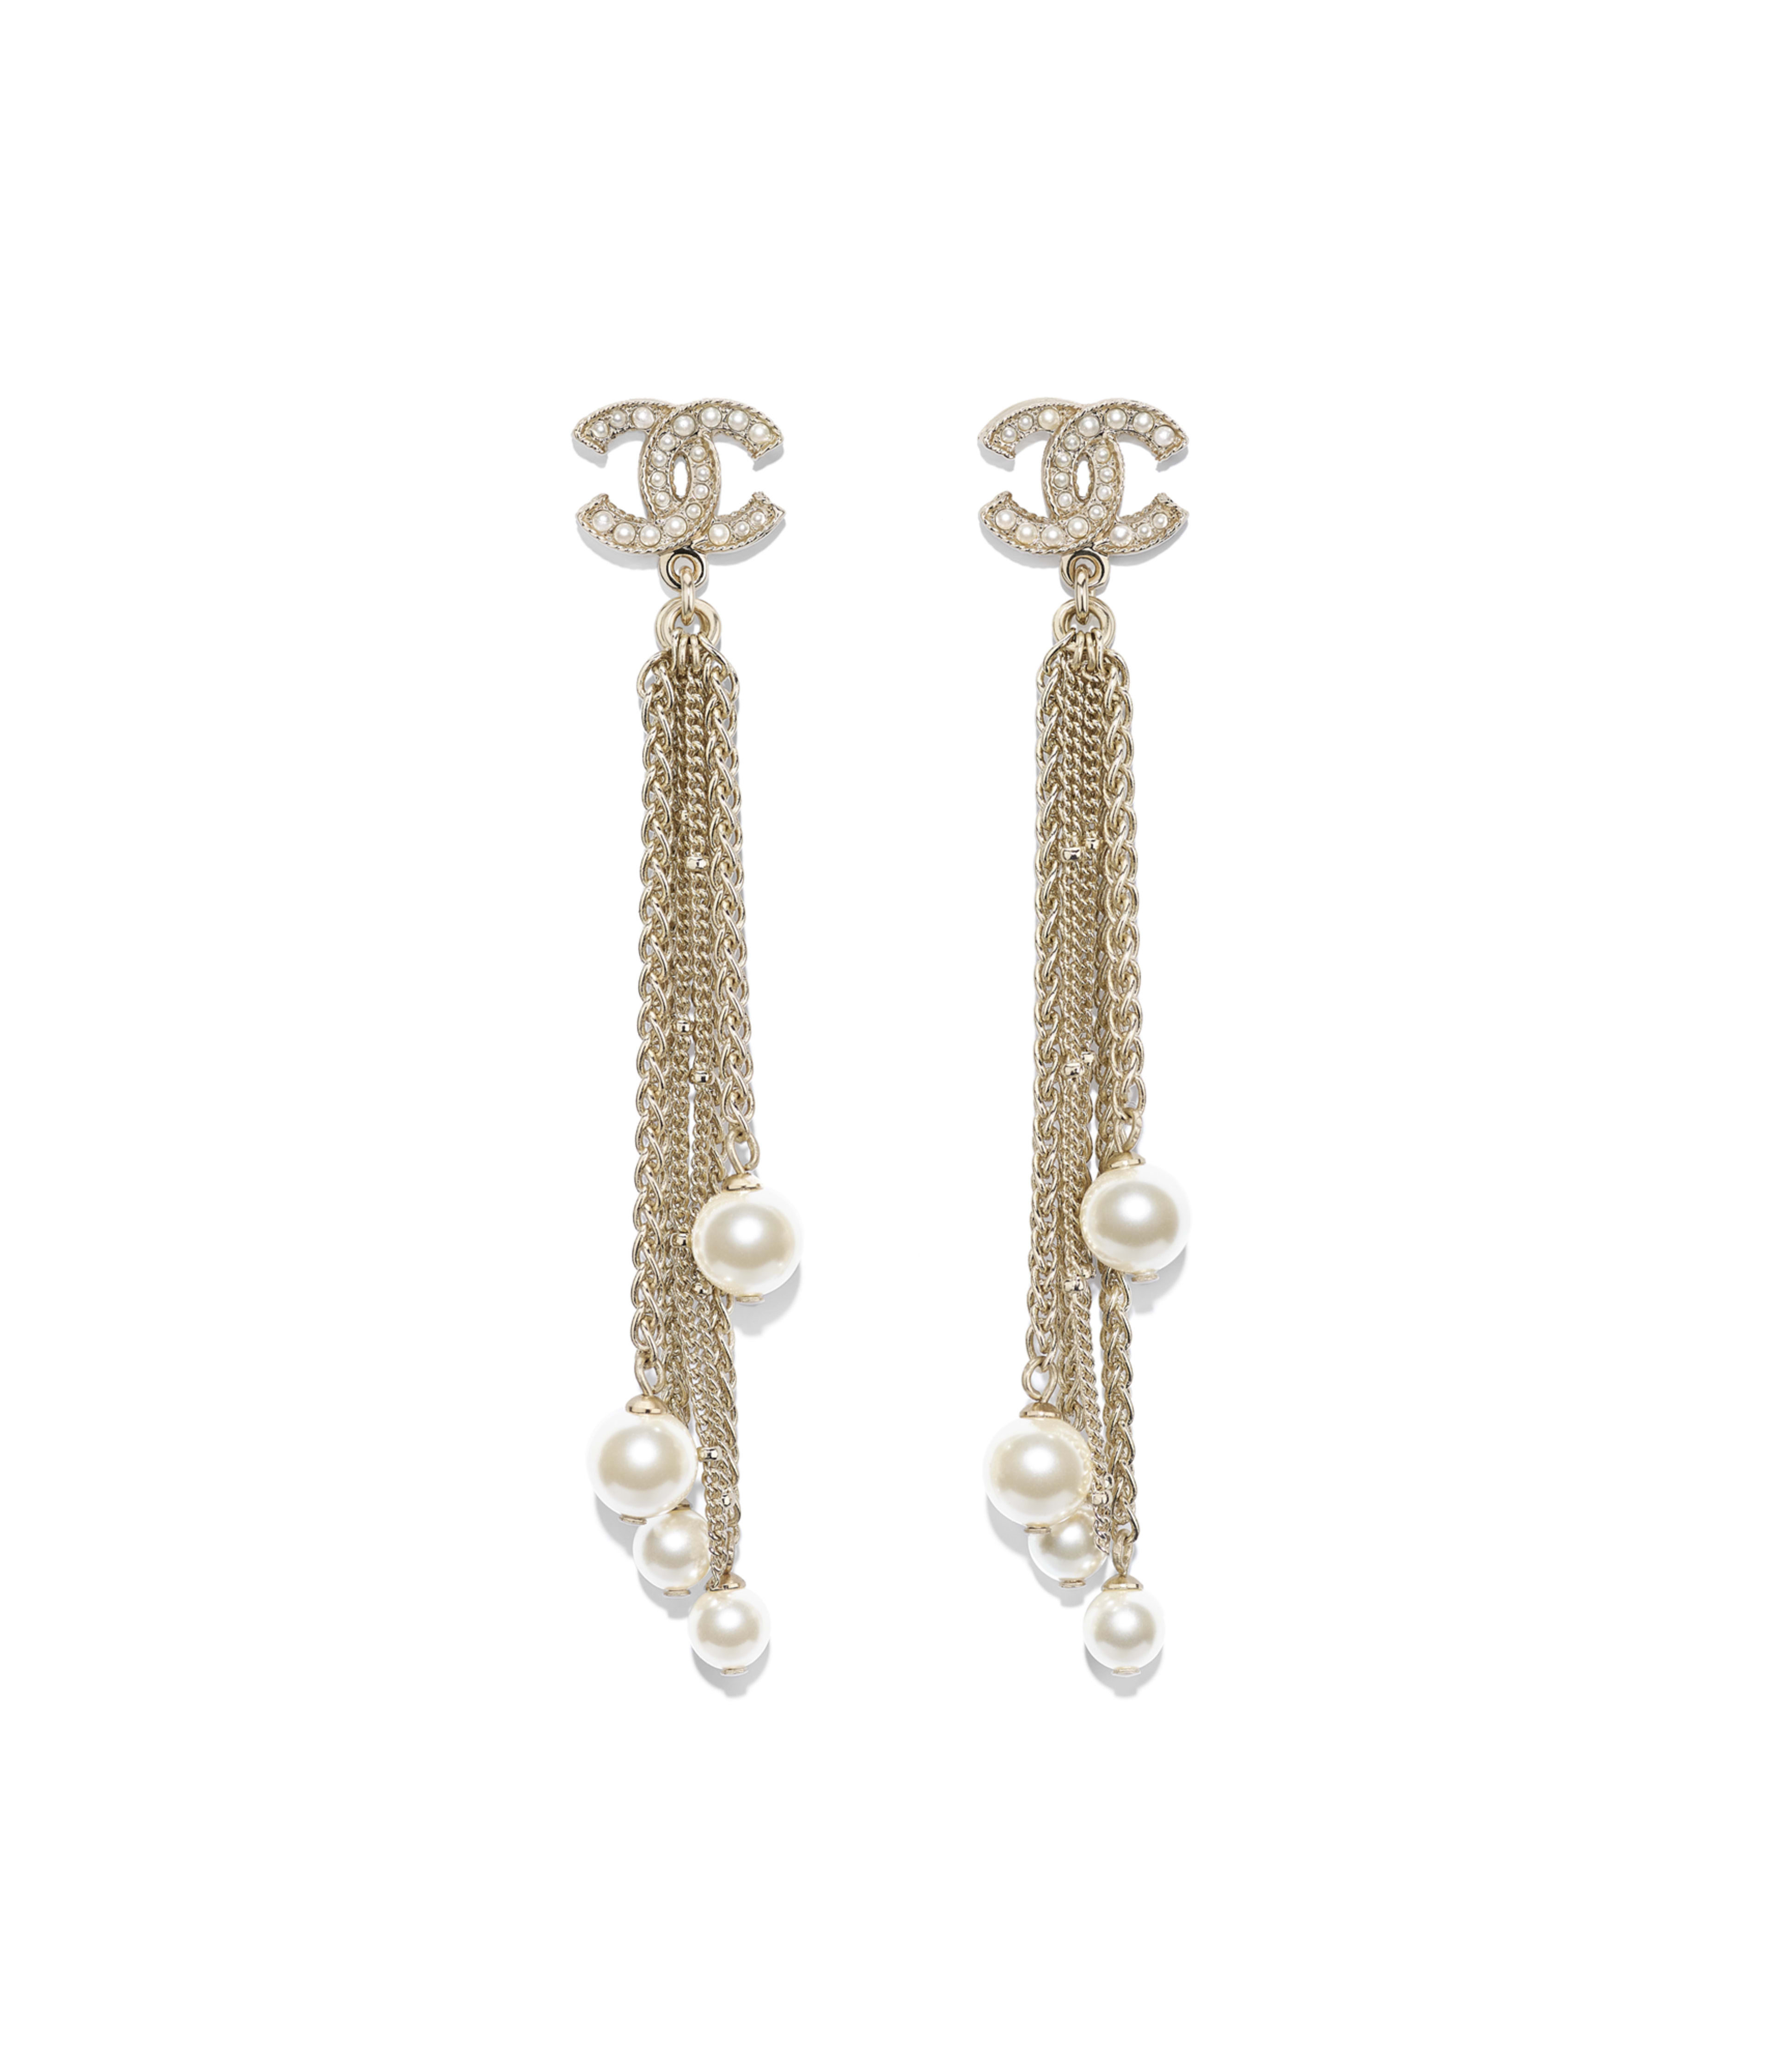 Earrings Metal Gl Pearls Resin Gold Pearly White Ref Ab0672y47466z2048